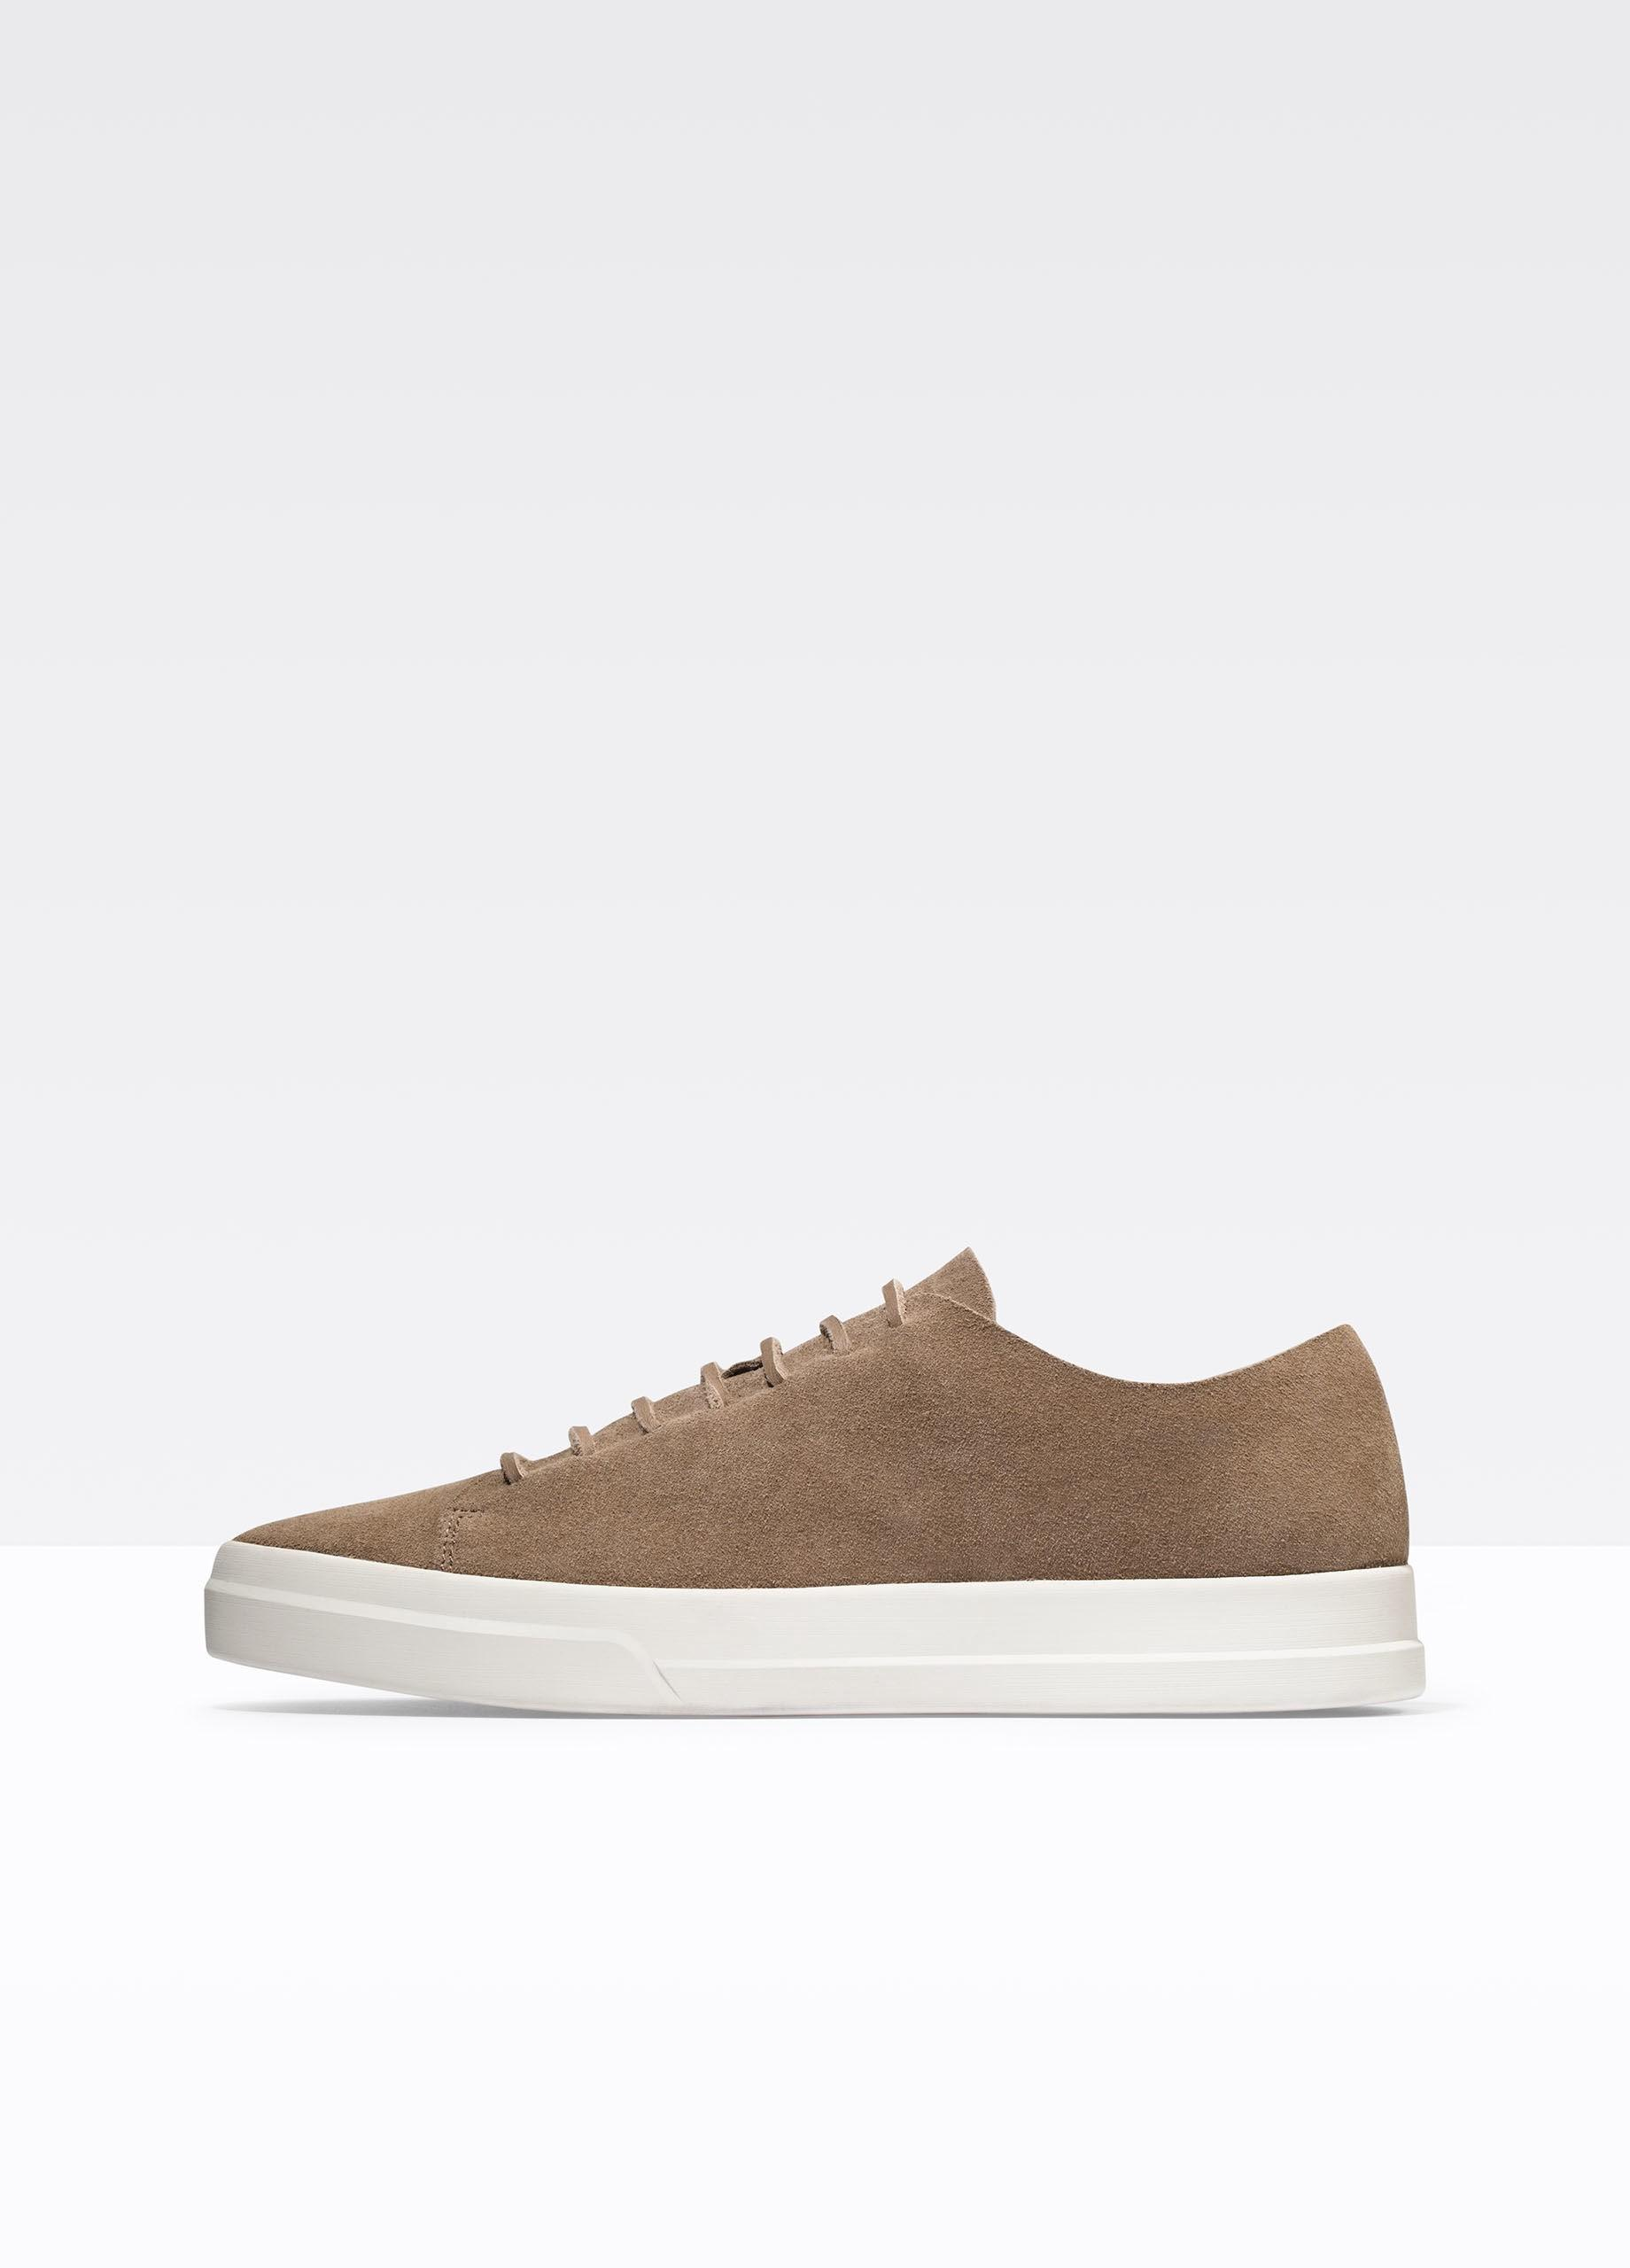 Vince Simon Suede Sneakers In Flint